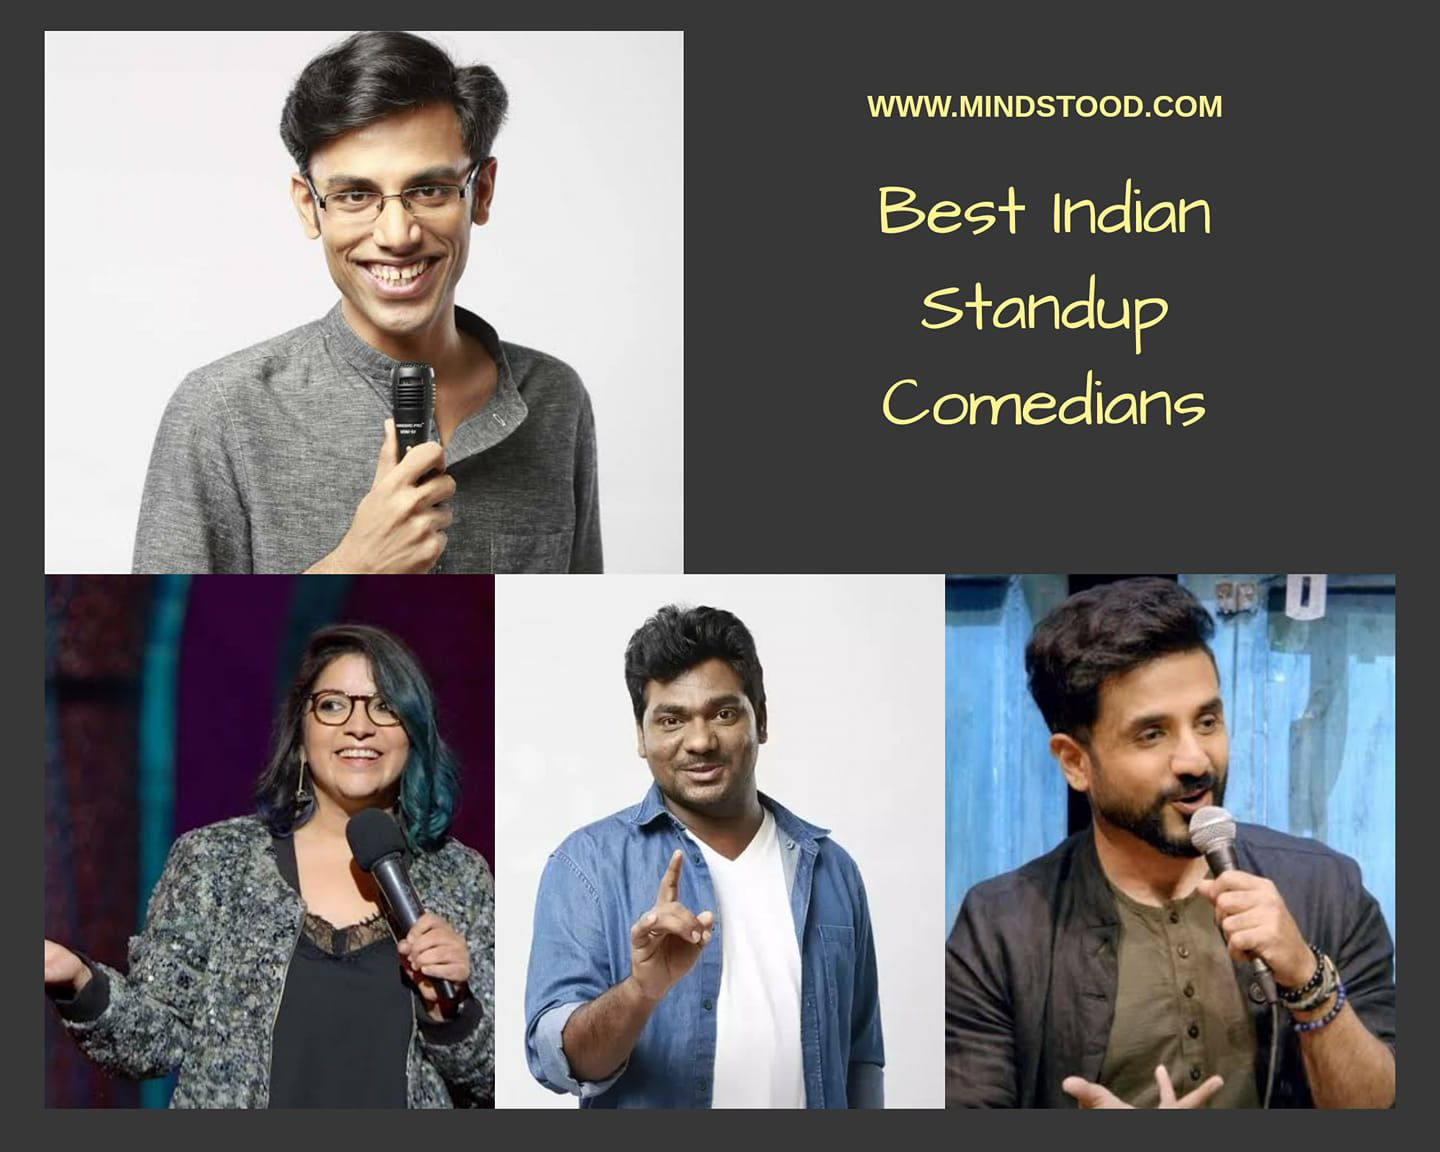 Famous Indian comedians in 2020 Comedians, Stand up